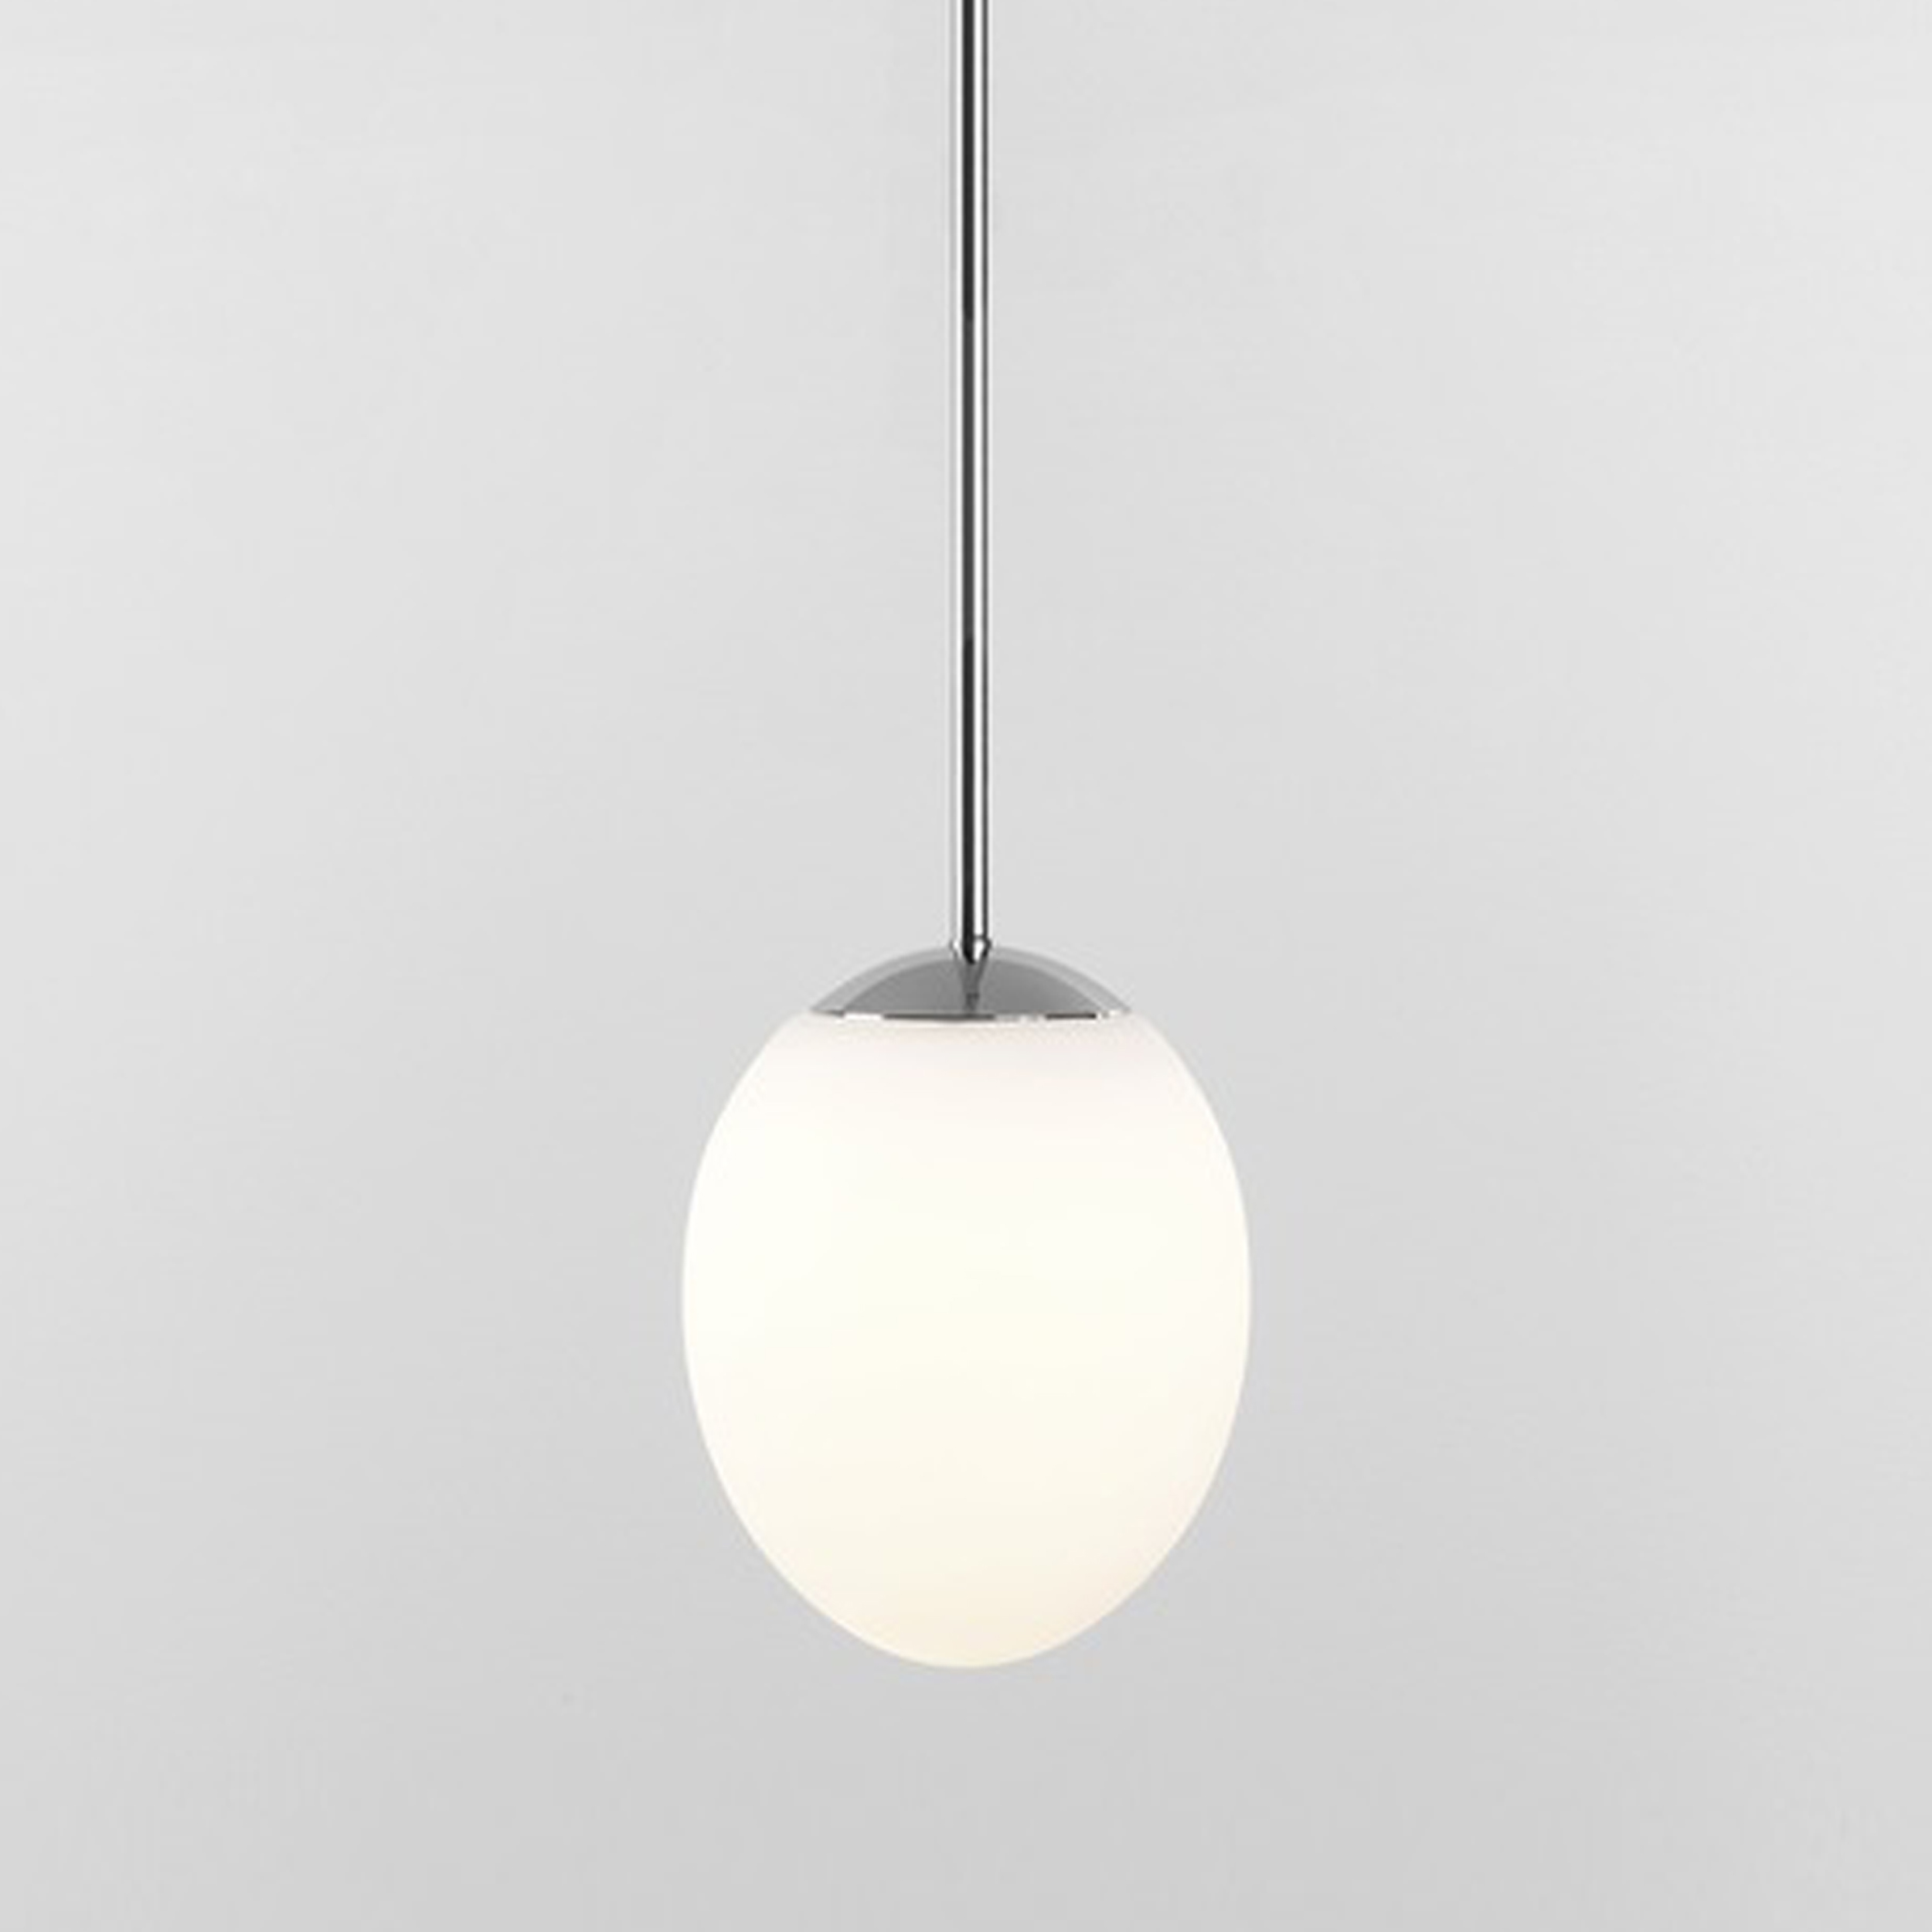 Astro Ariana Led Pendant Light Polished Chrome B